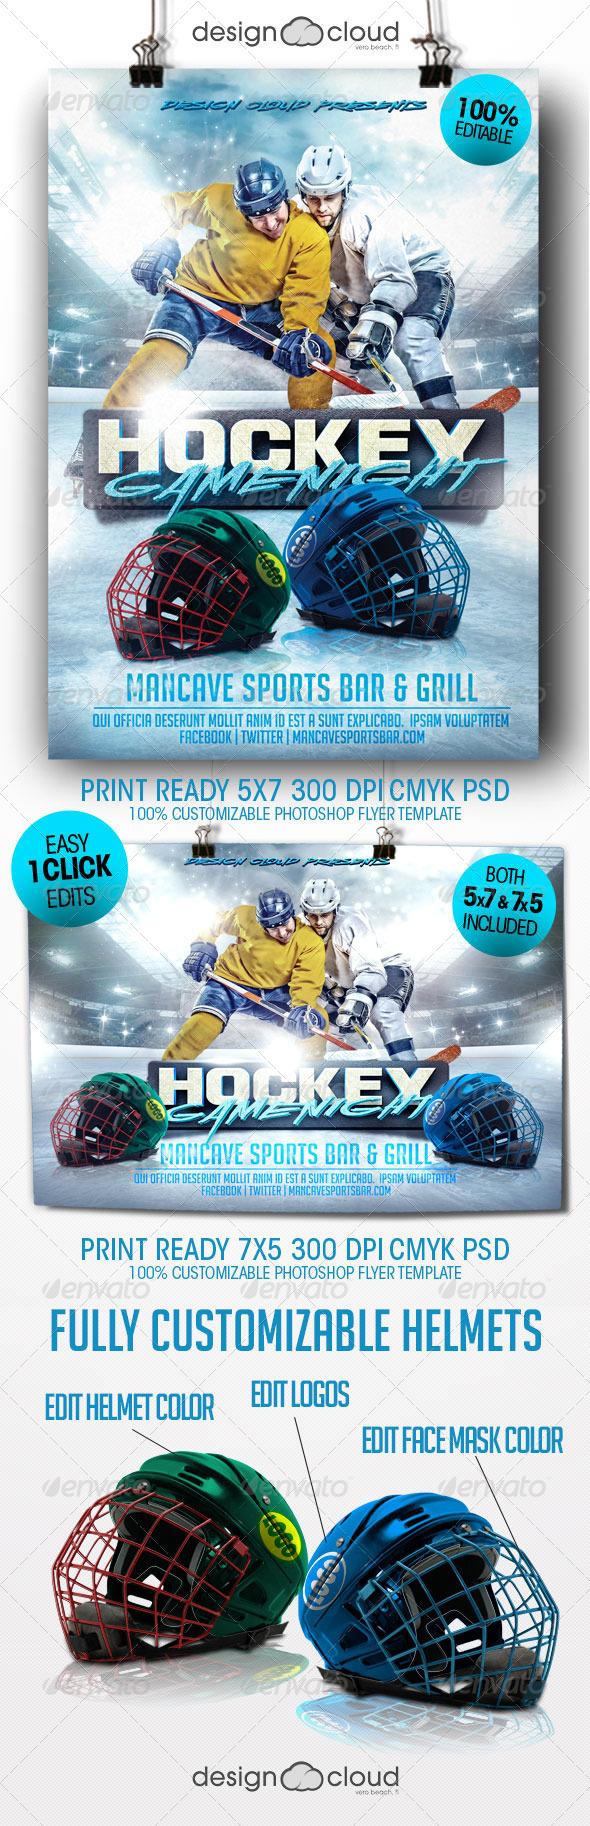 Hockey game night flyer template by design cloud graphicriver hockey game night flyer template sports events maxwellsz